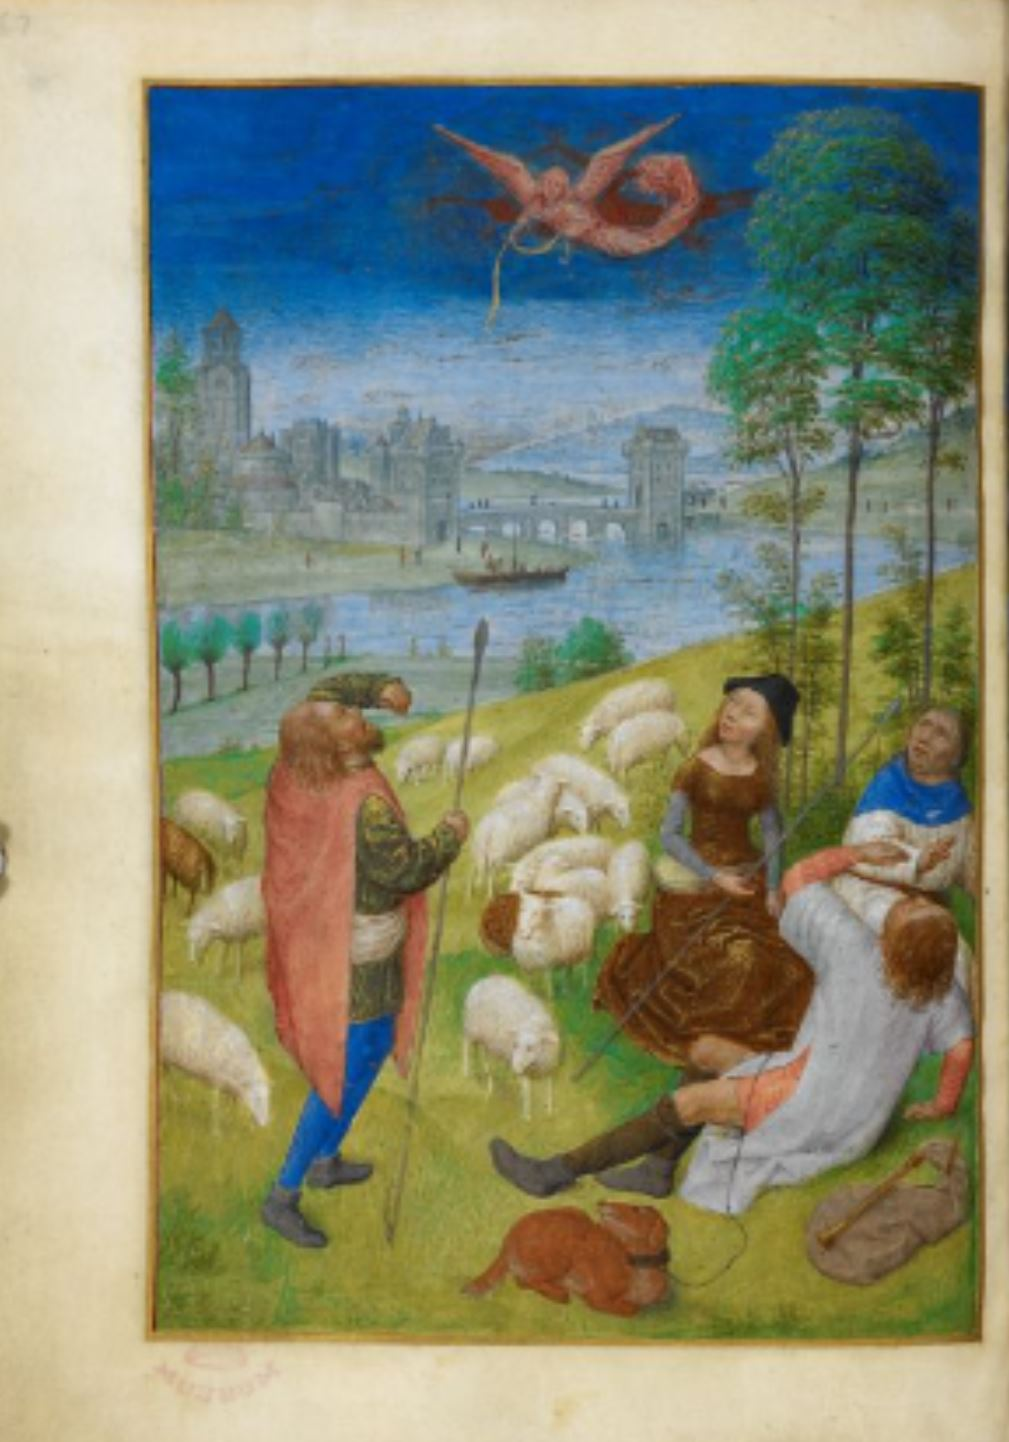 Huth Hours 1485-90 Apparition aux BergersBL Add MS 38126 fol 79v